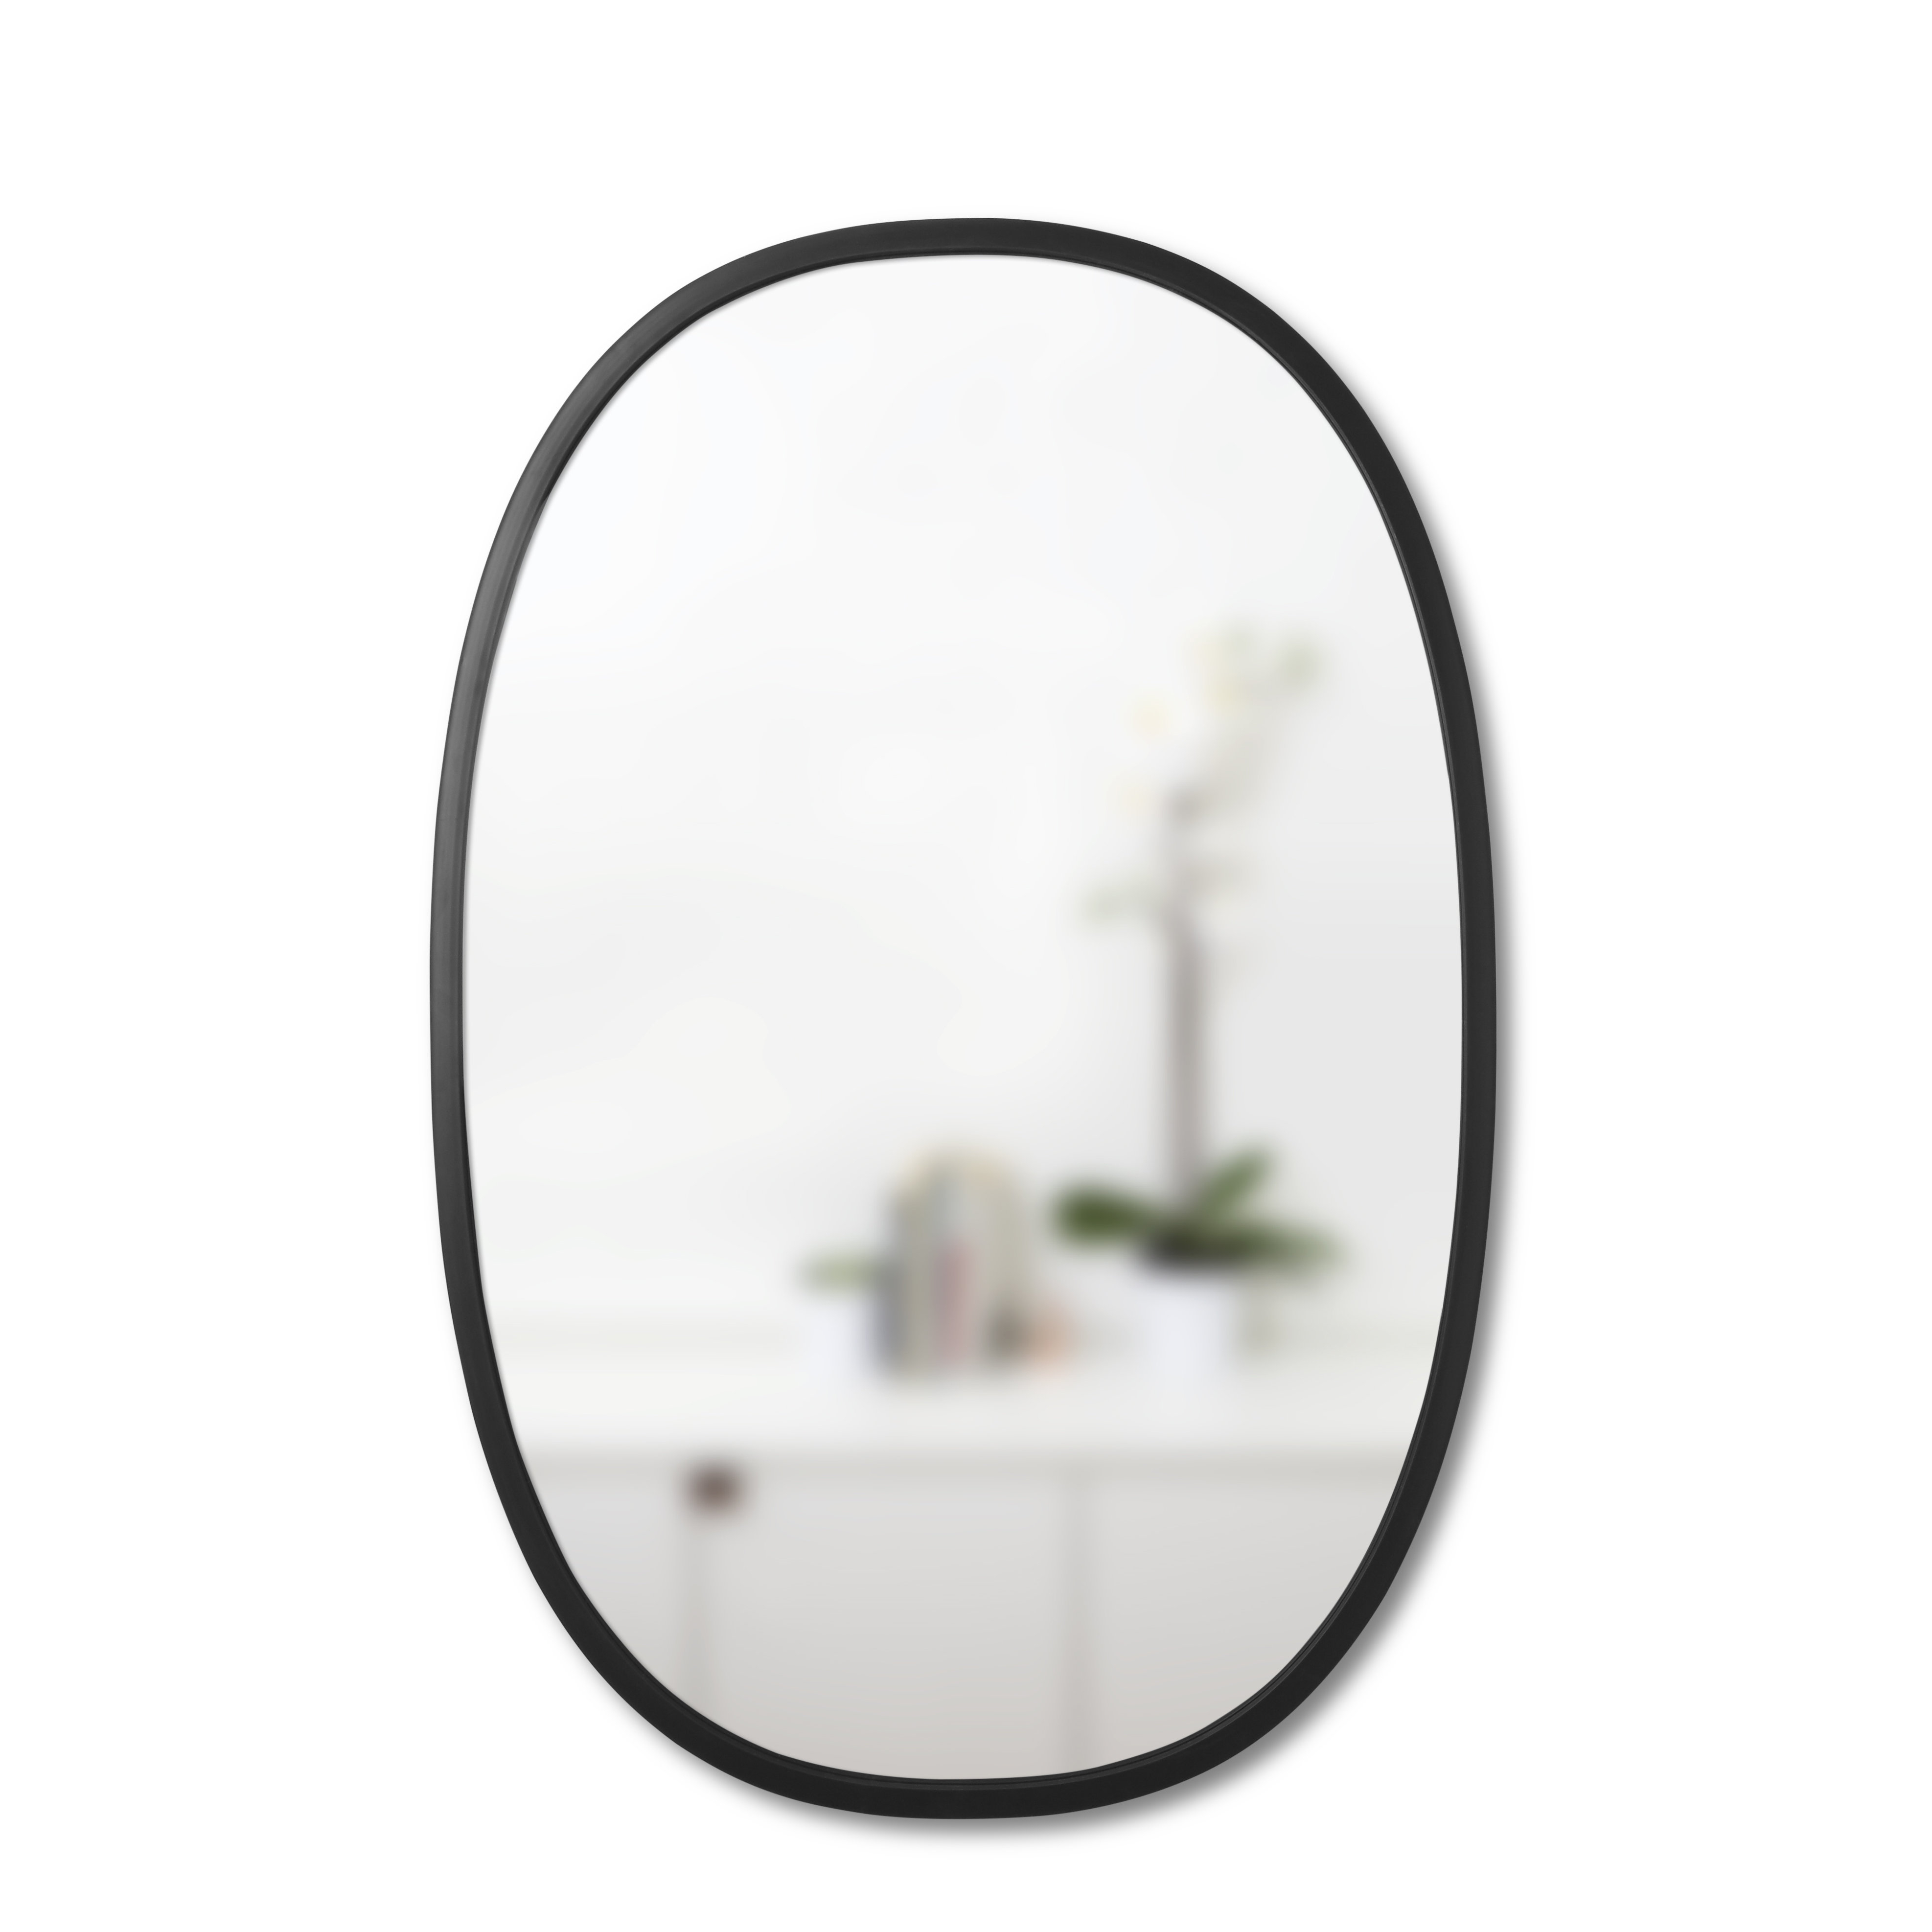 Umbra Hub Modern Contemporary Accent Mirror inside Hub Modern And Contemporary Accent Mirrors (Image 29 of 30)